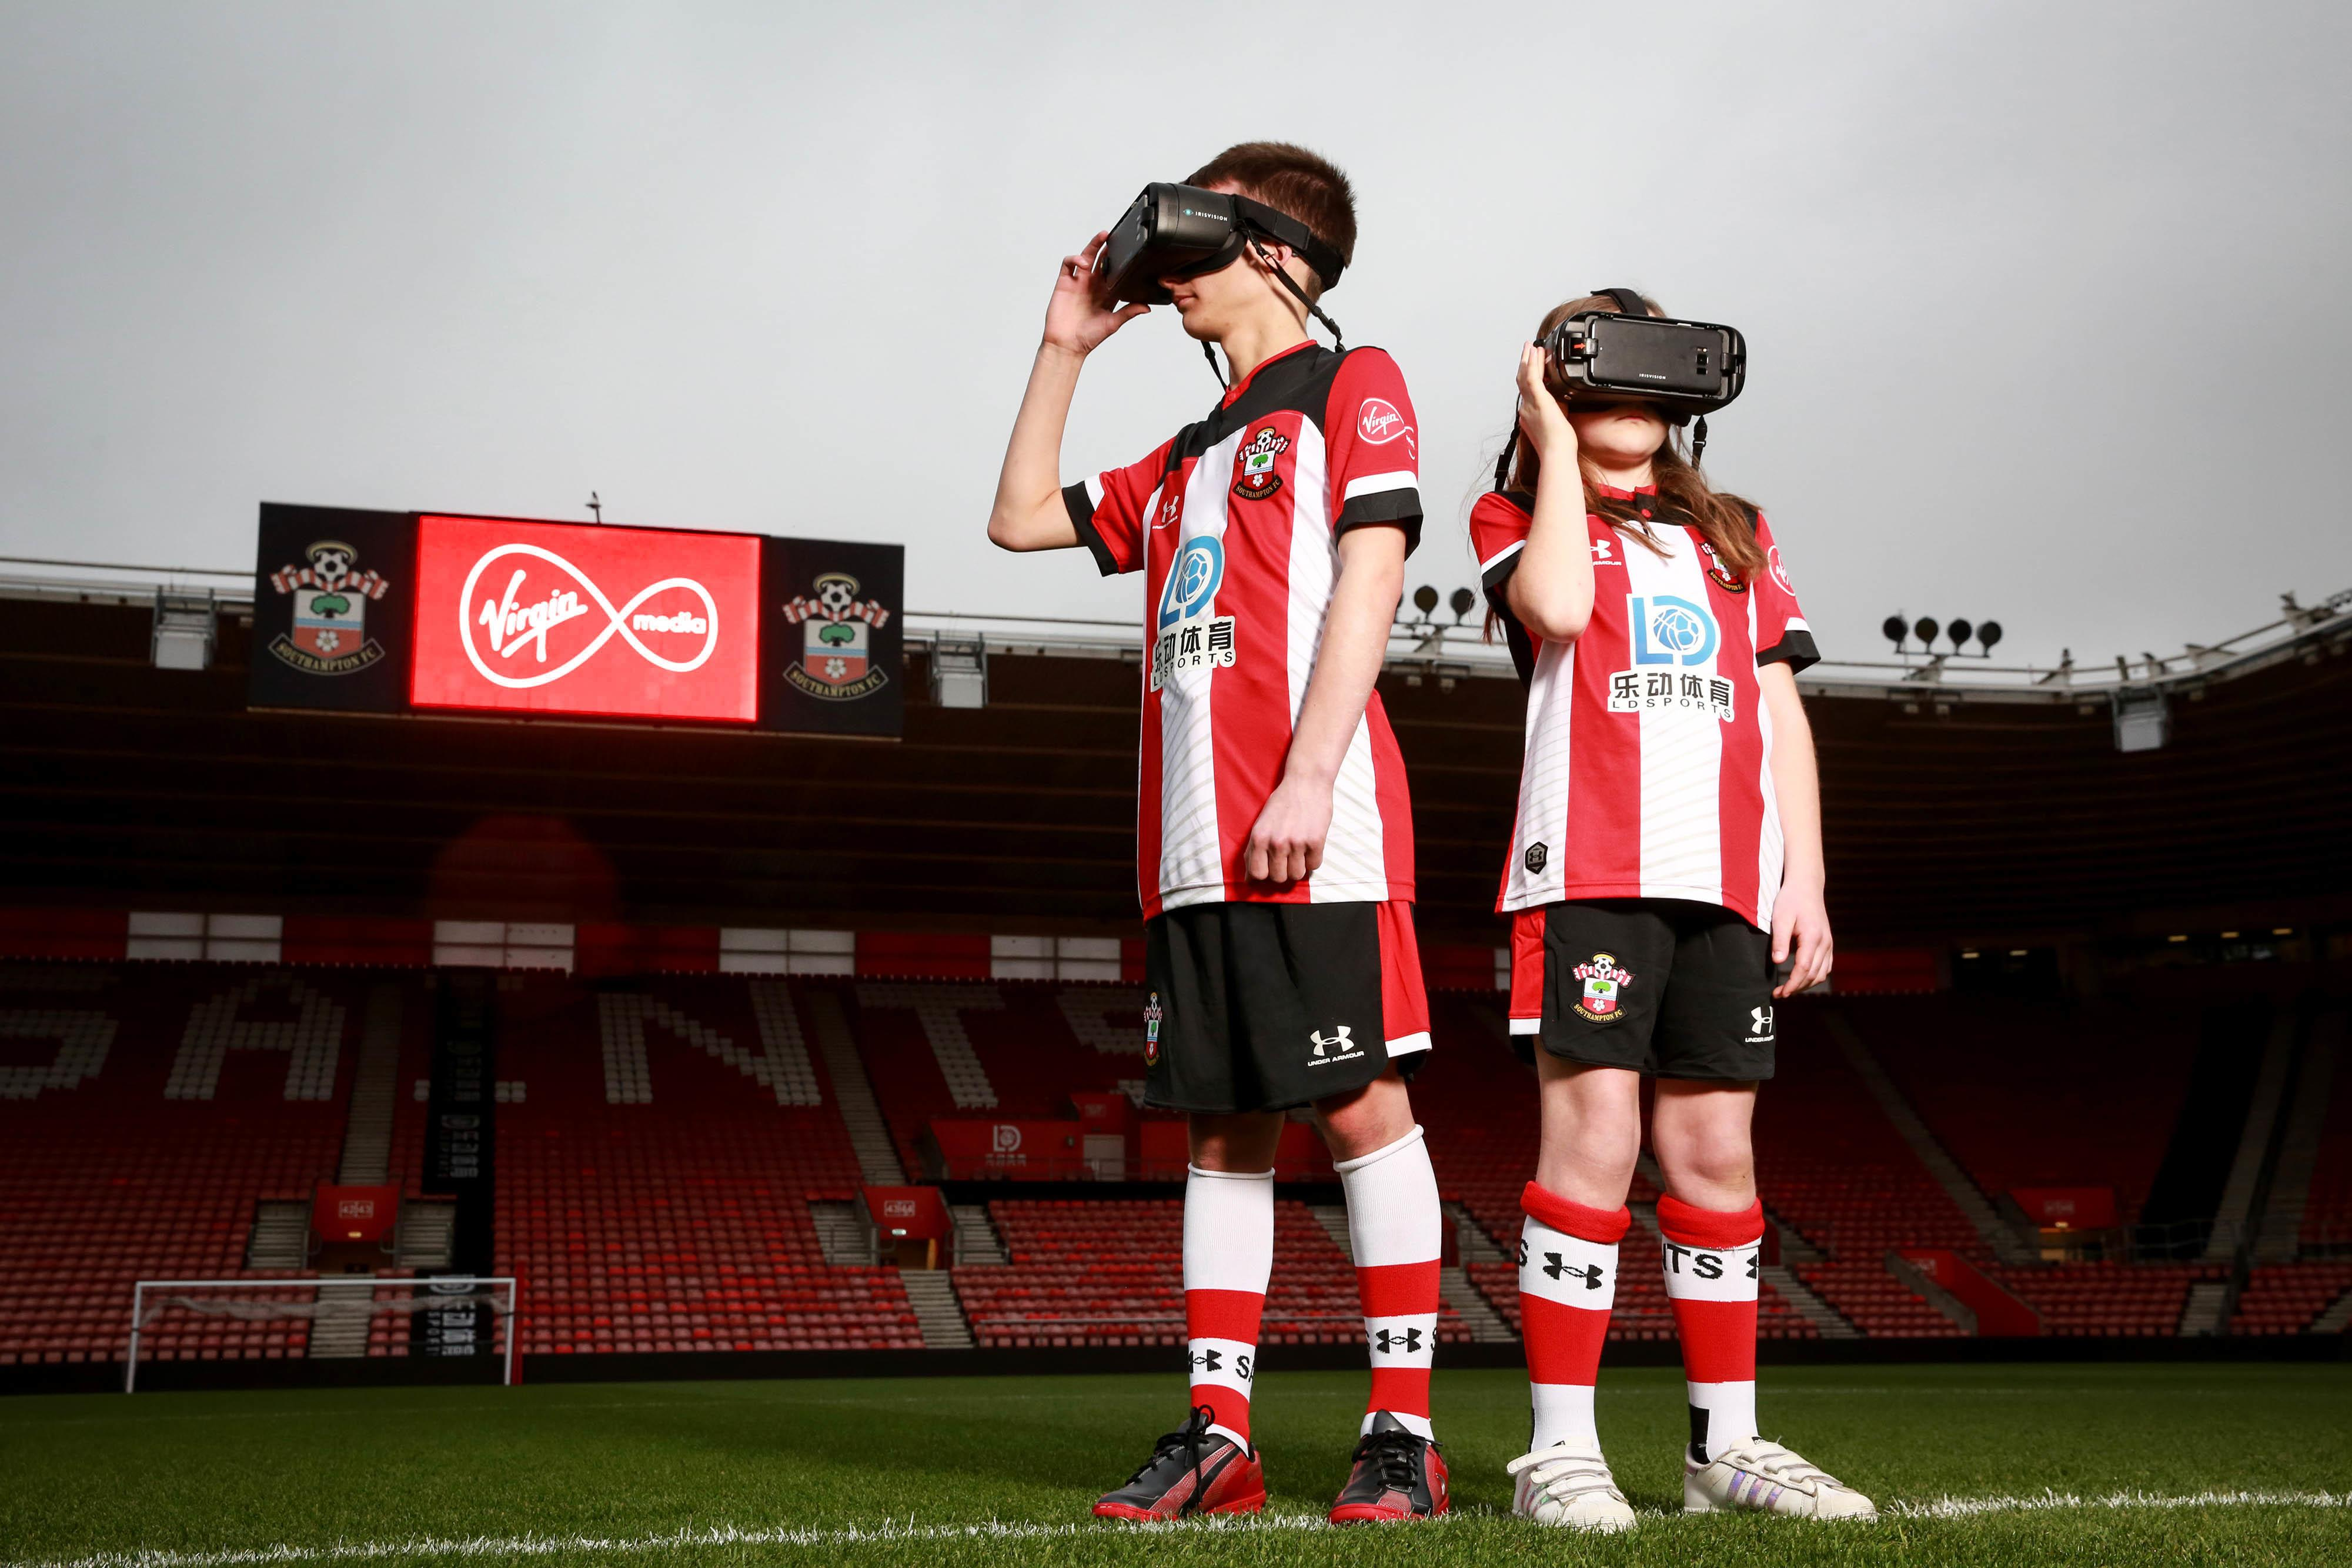 Young football fan and player wearing the IrisVision Live